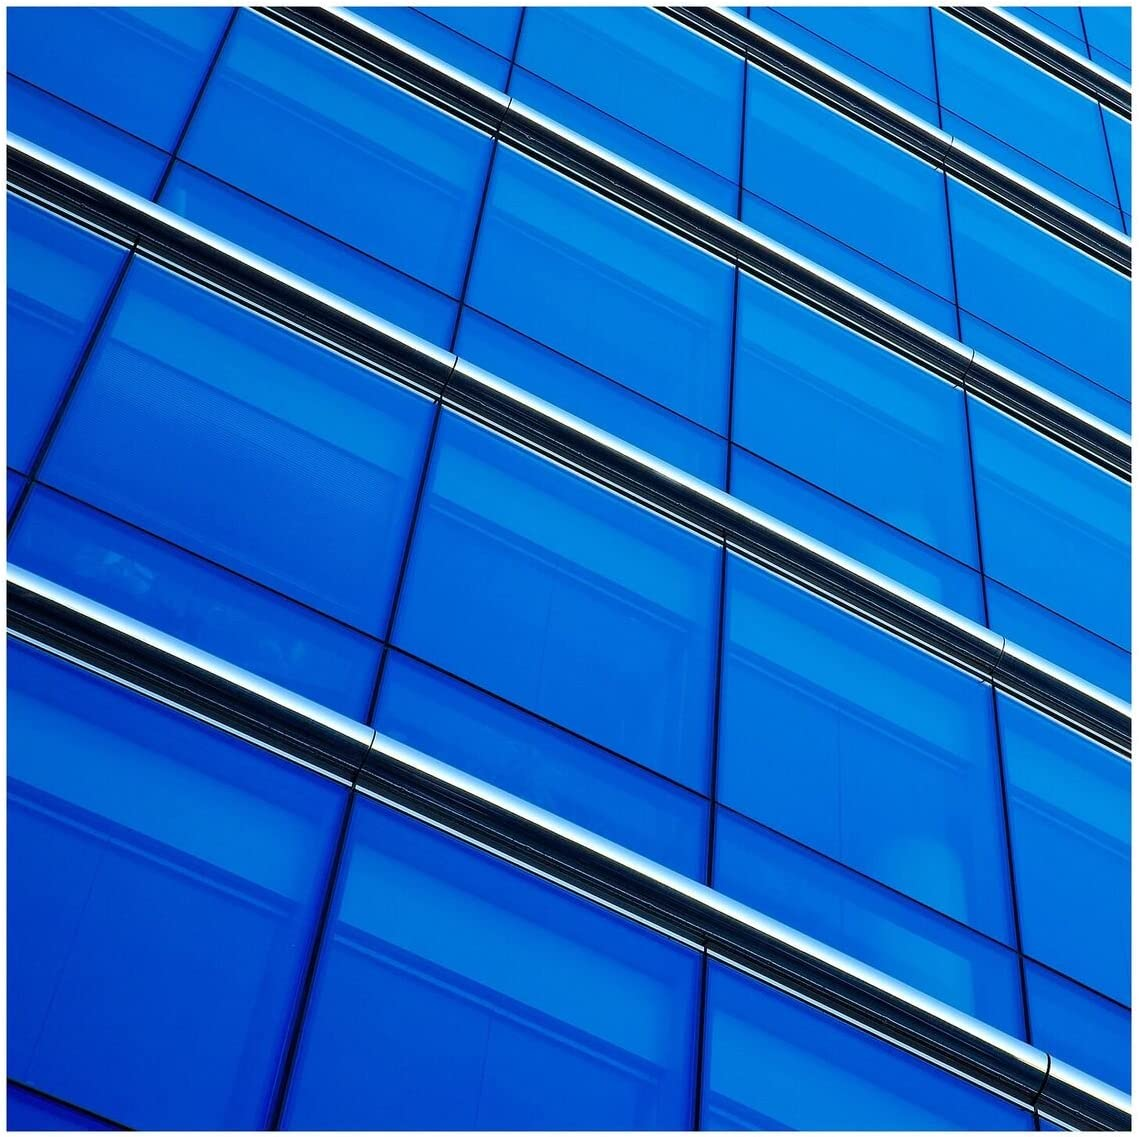 BDF CABL Window Film Transparent Color Blue 36 X 25ft